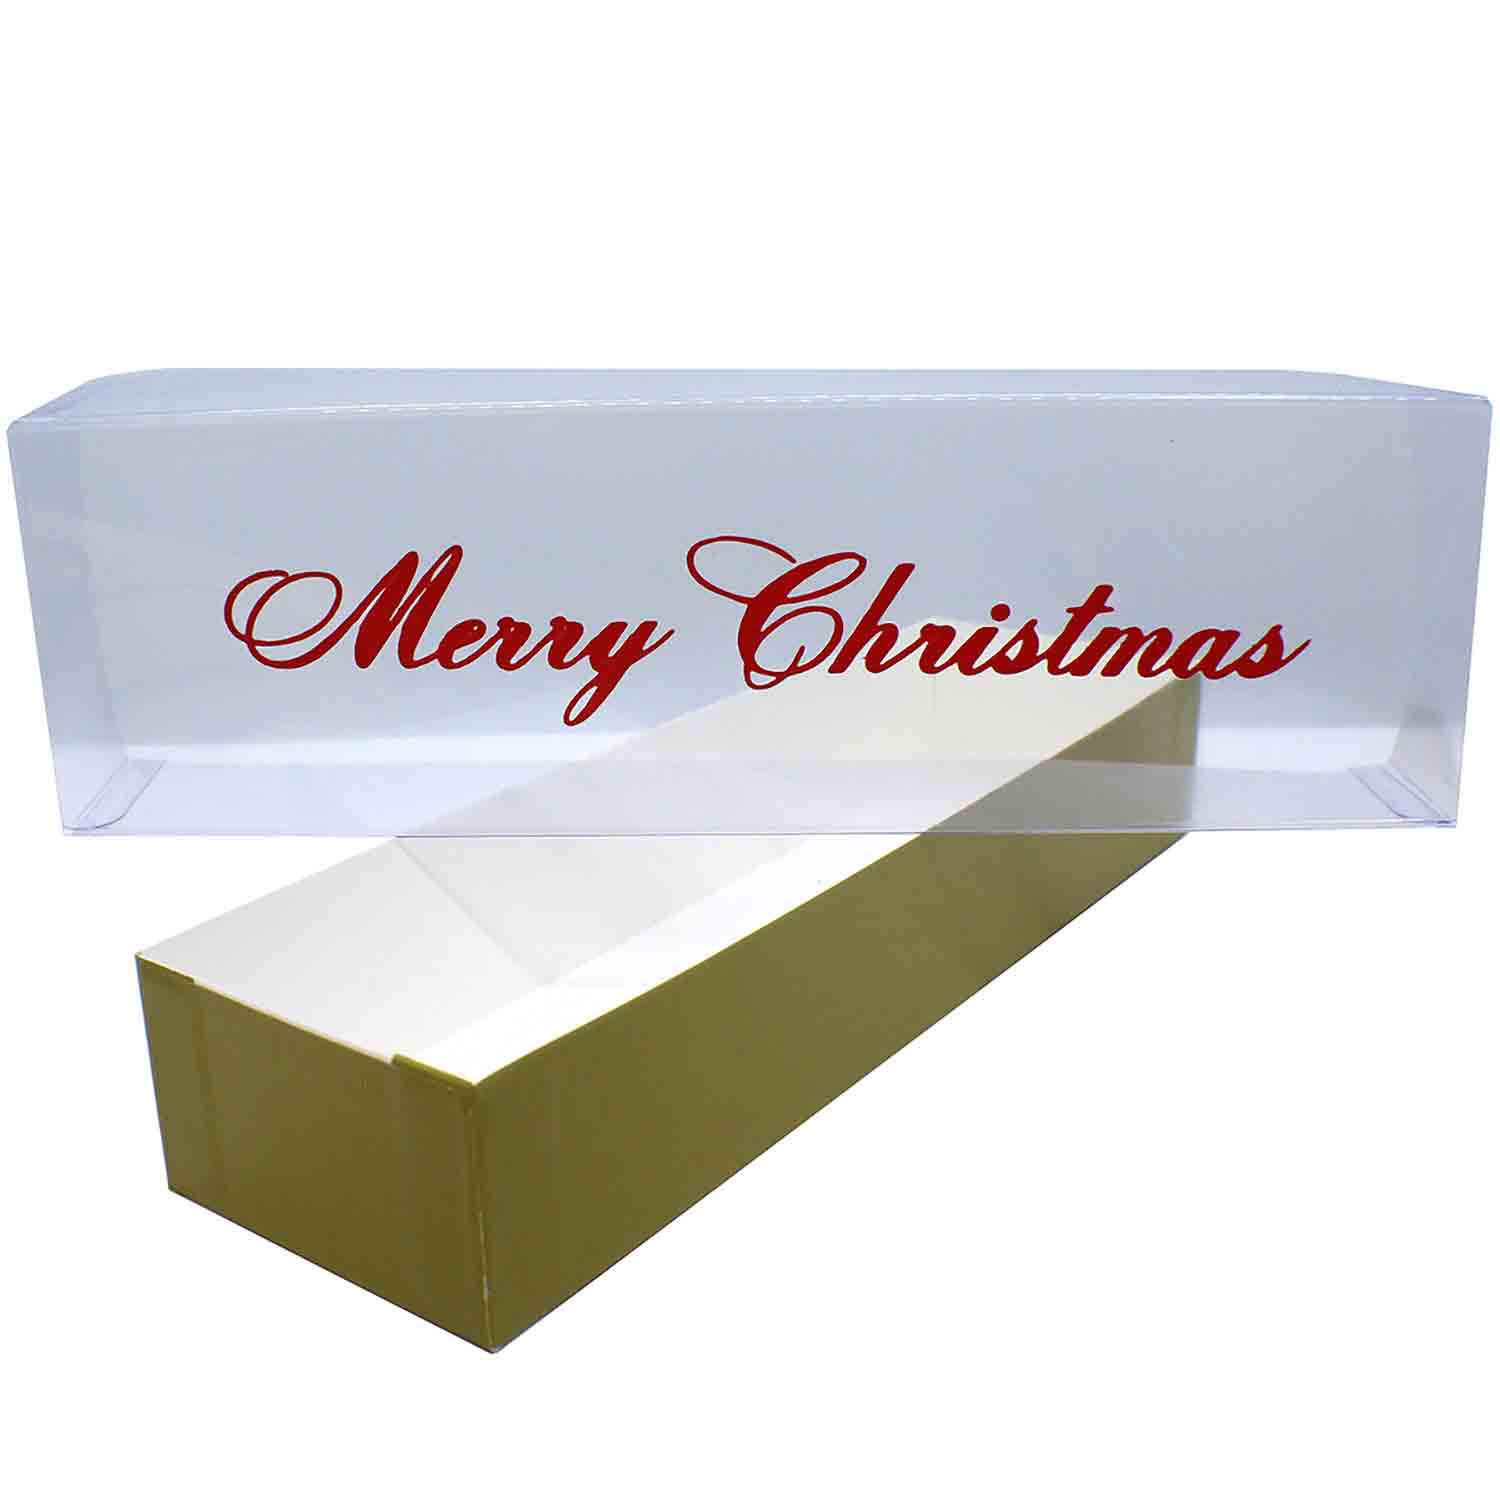 Merry Christmas Poly Board Box